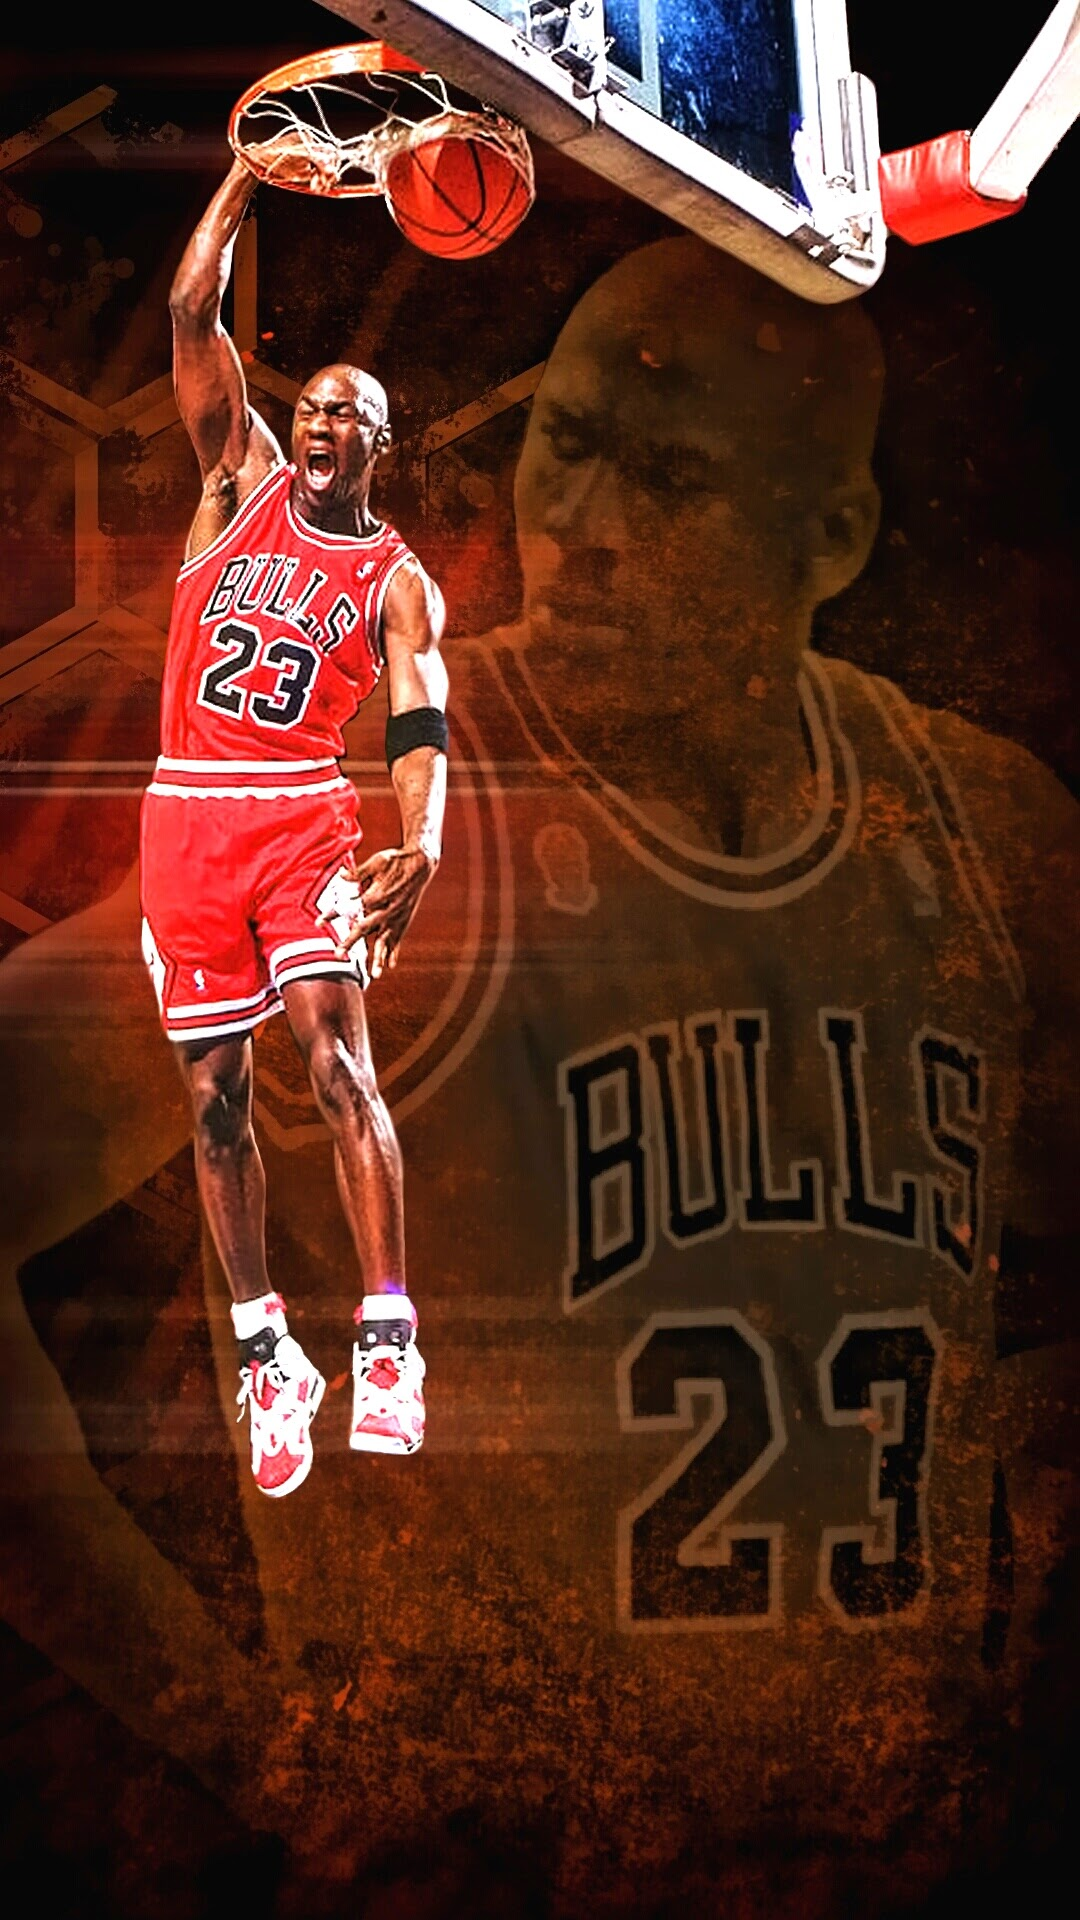 iPhone wallpaper michael jordan3 3Wallpapers : notre sélection de fonds d'écran du 22/03/2018